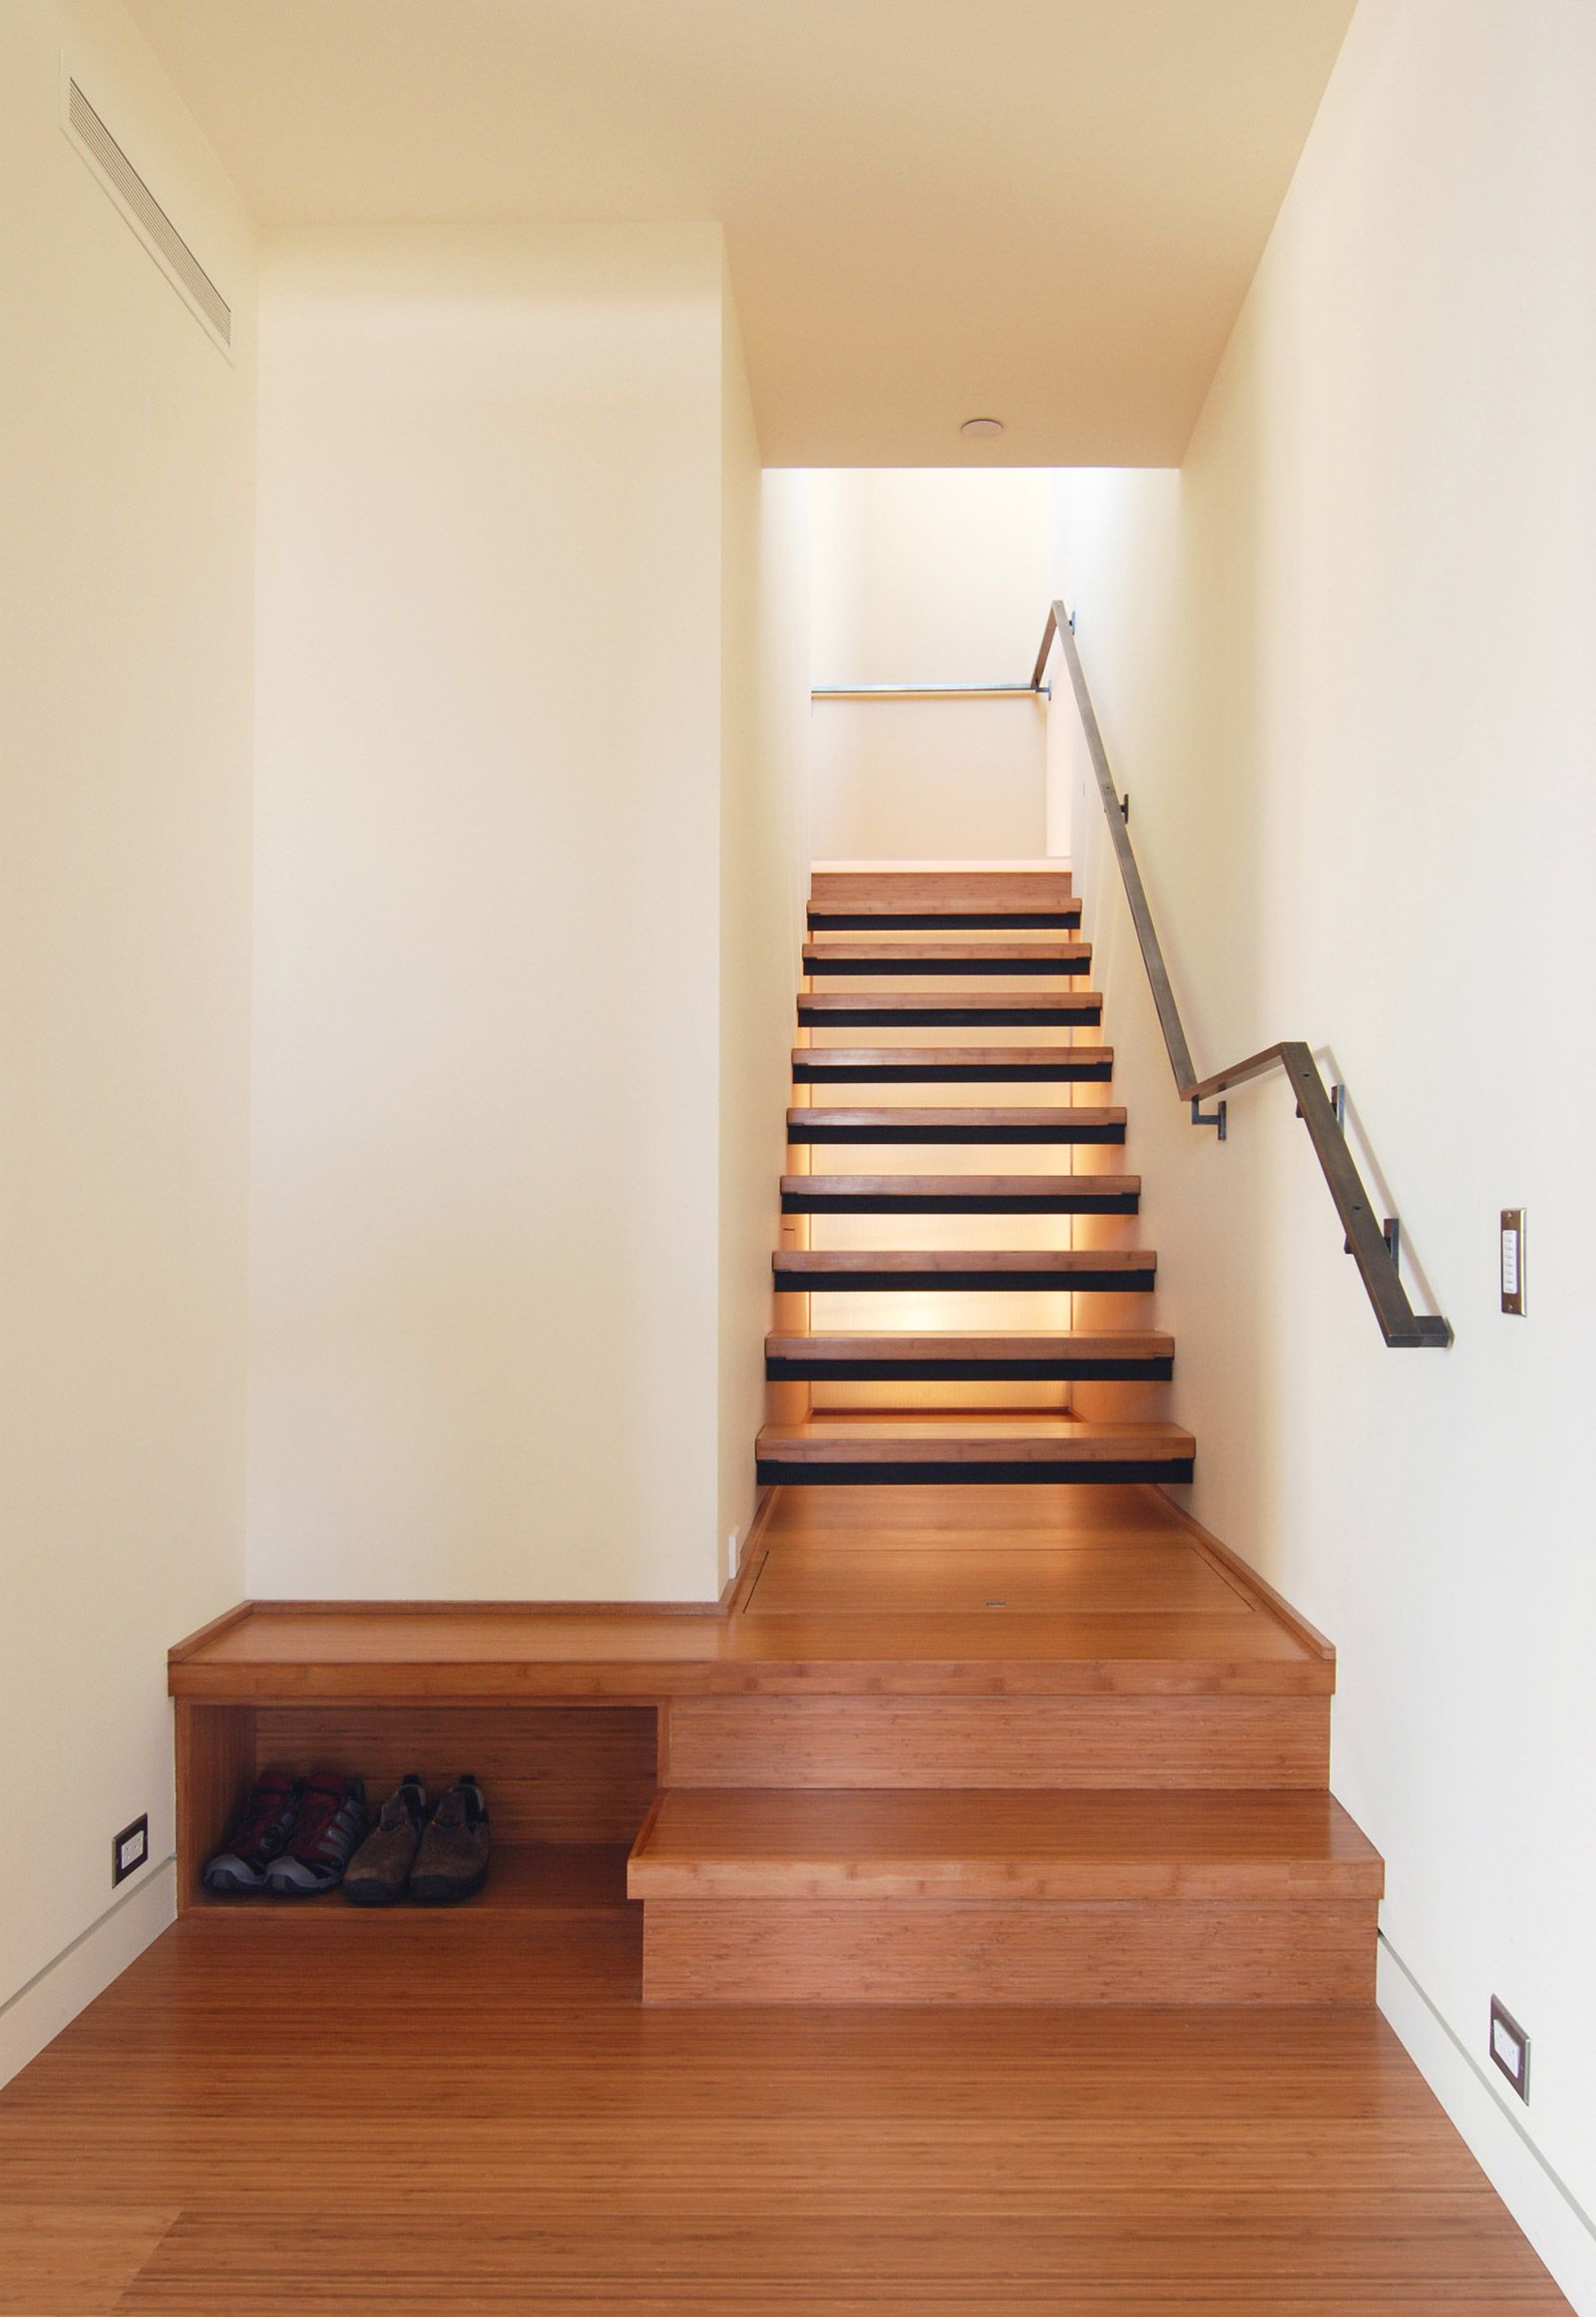 A Visual Guide To Stairs Build Blog Stairs Design Modern   Staircase Side Window Designs   Outside Window Frame   Architecture   Small Space   Two Story   Landing